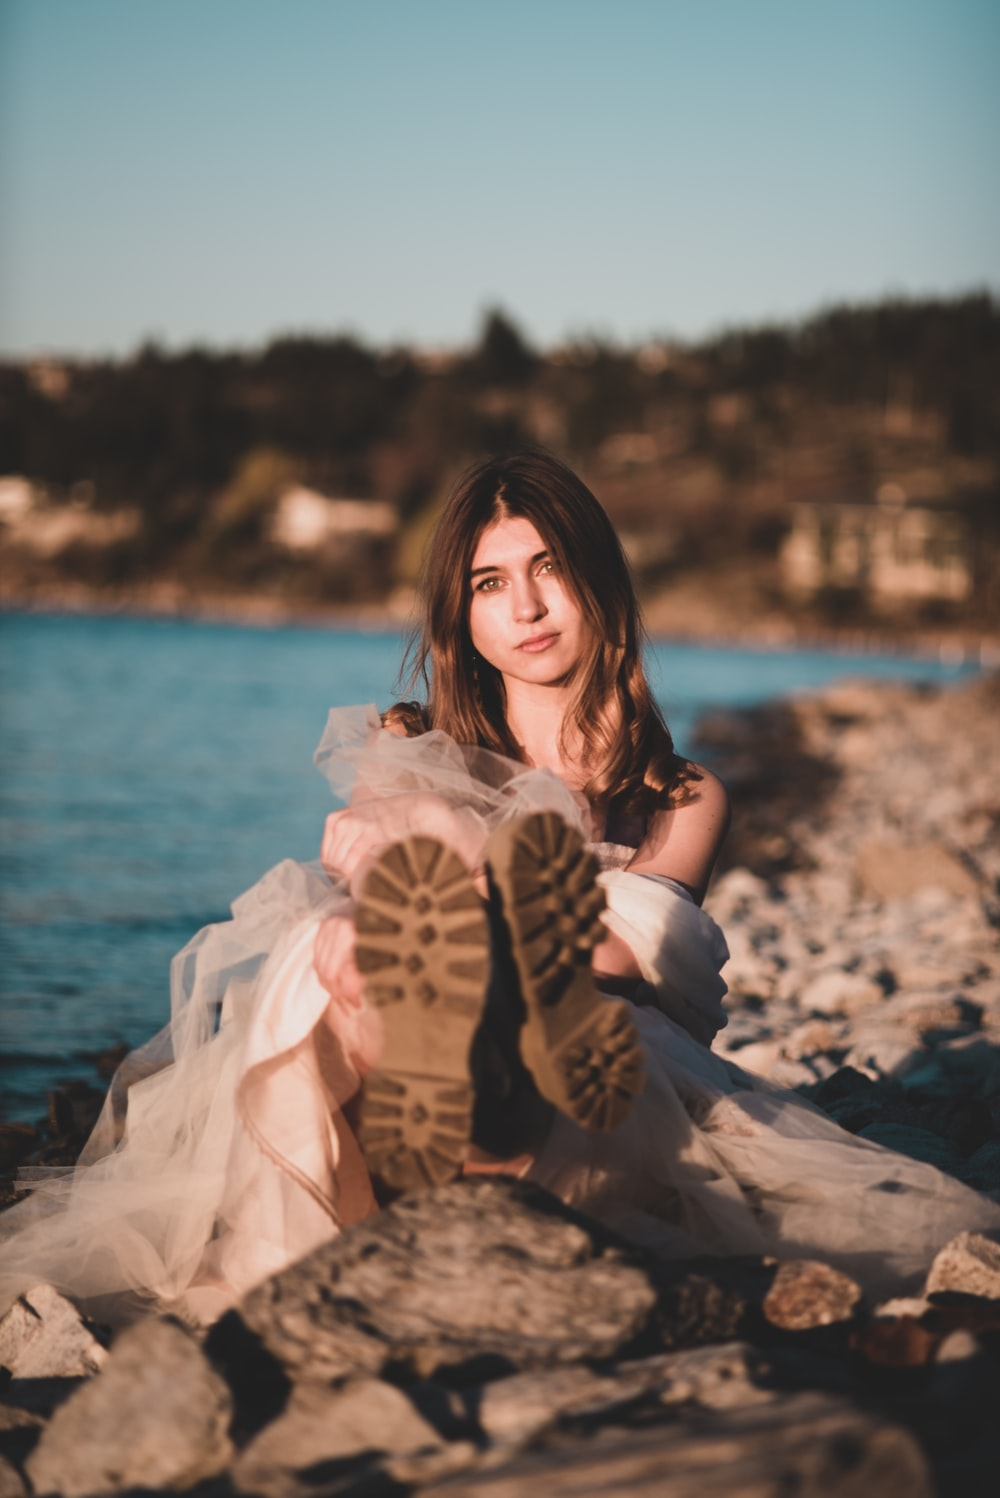 woman in white dress sitting on rock near body of water during daytime